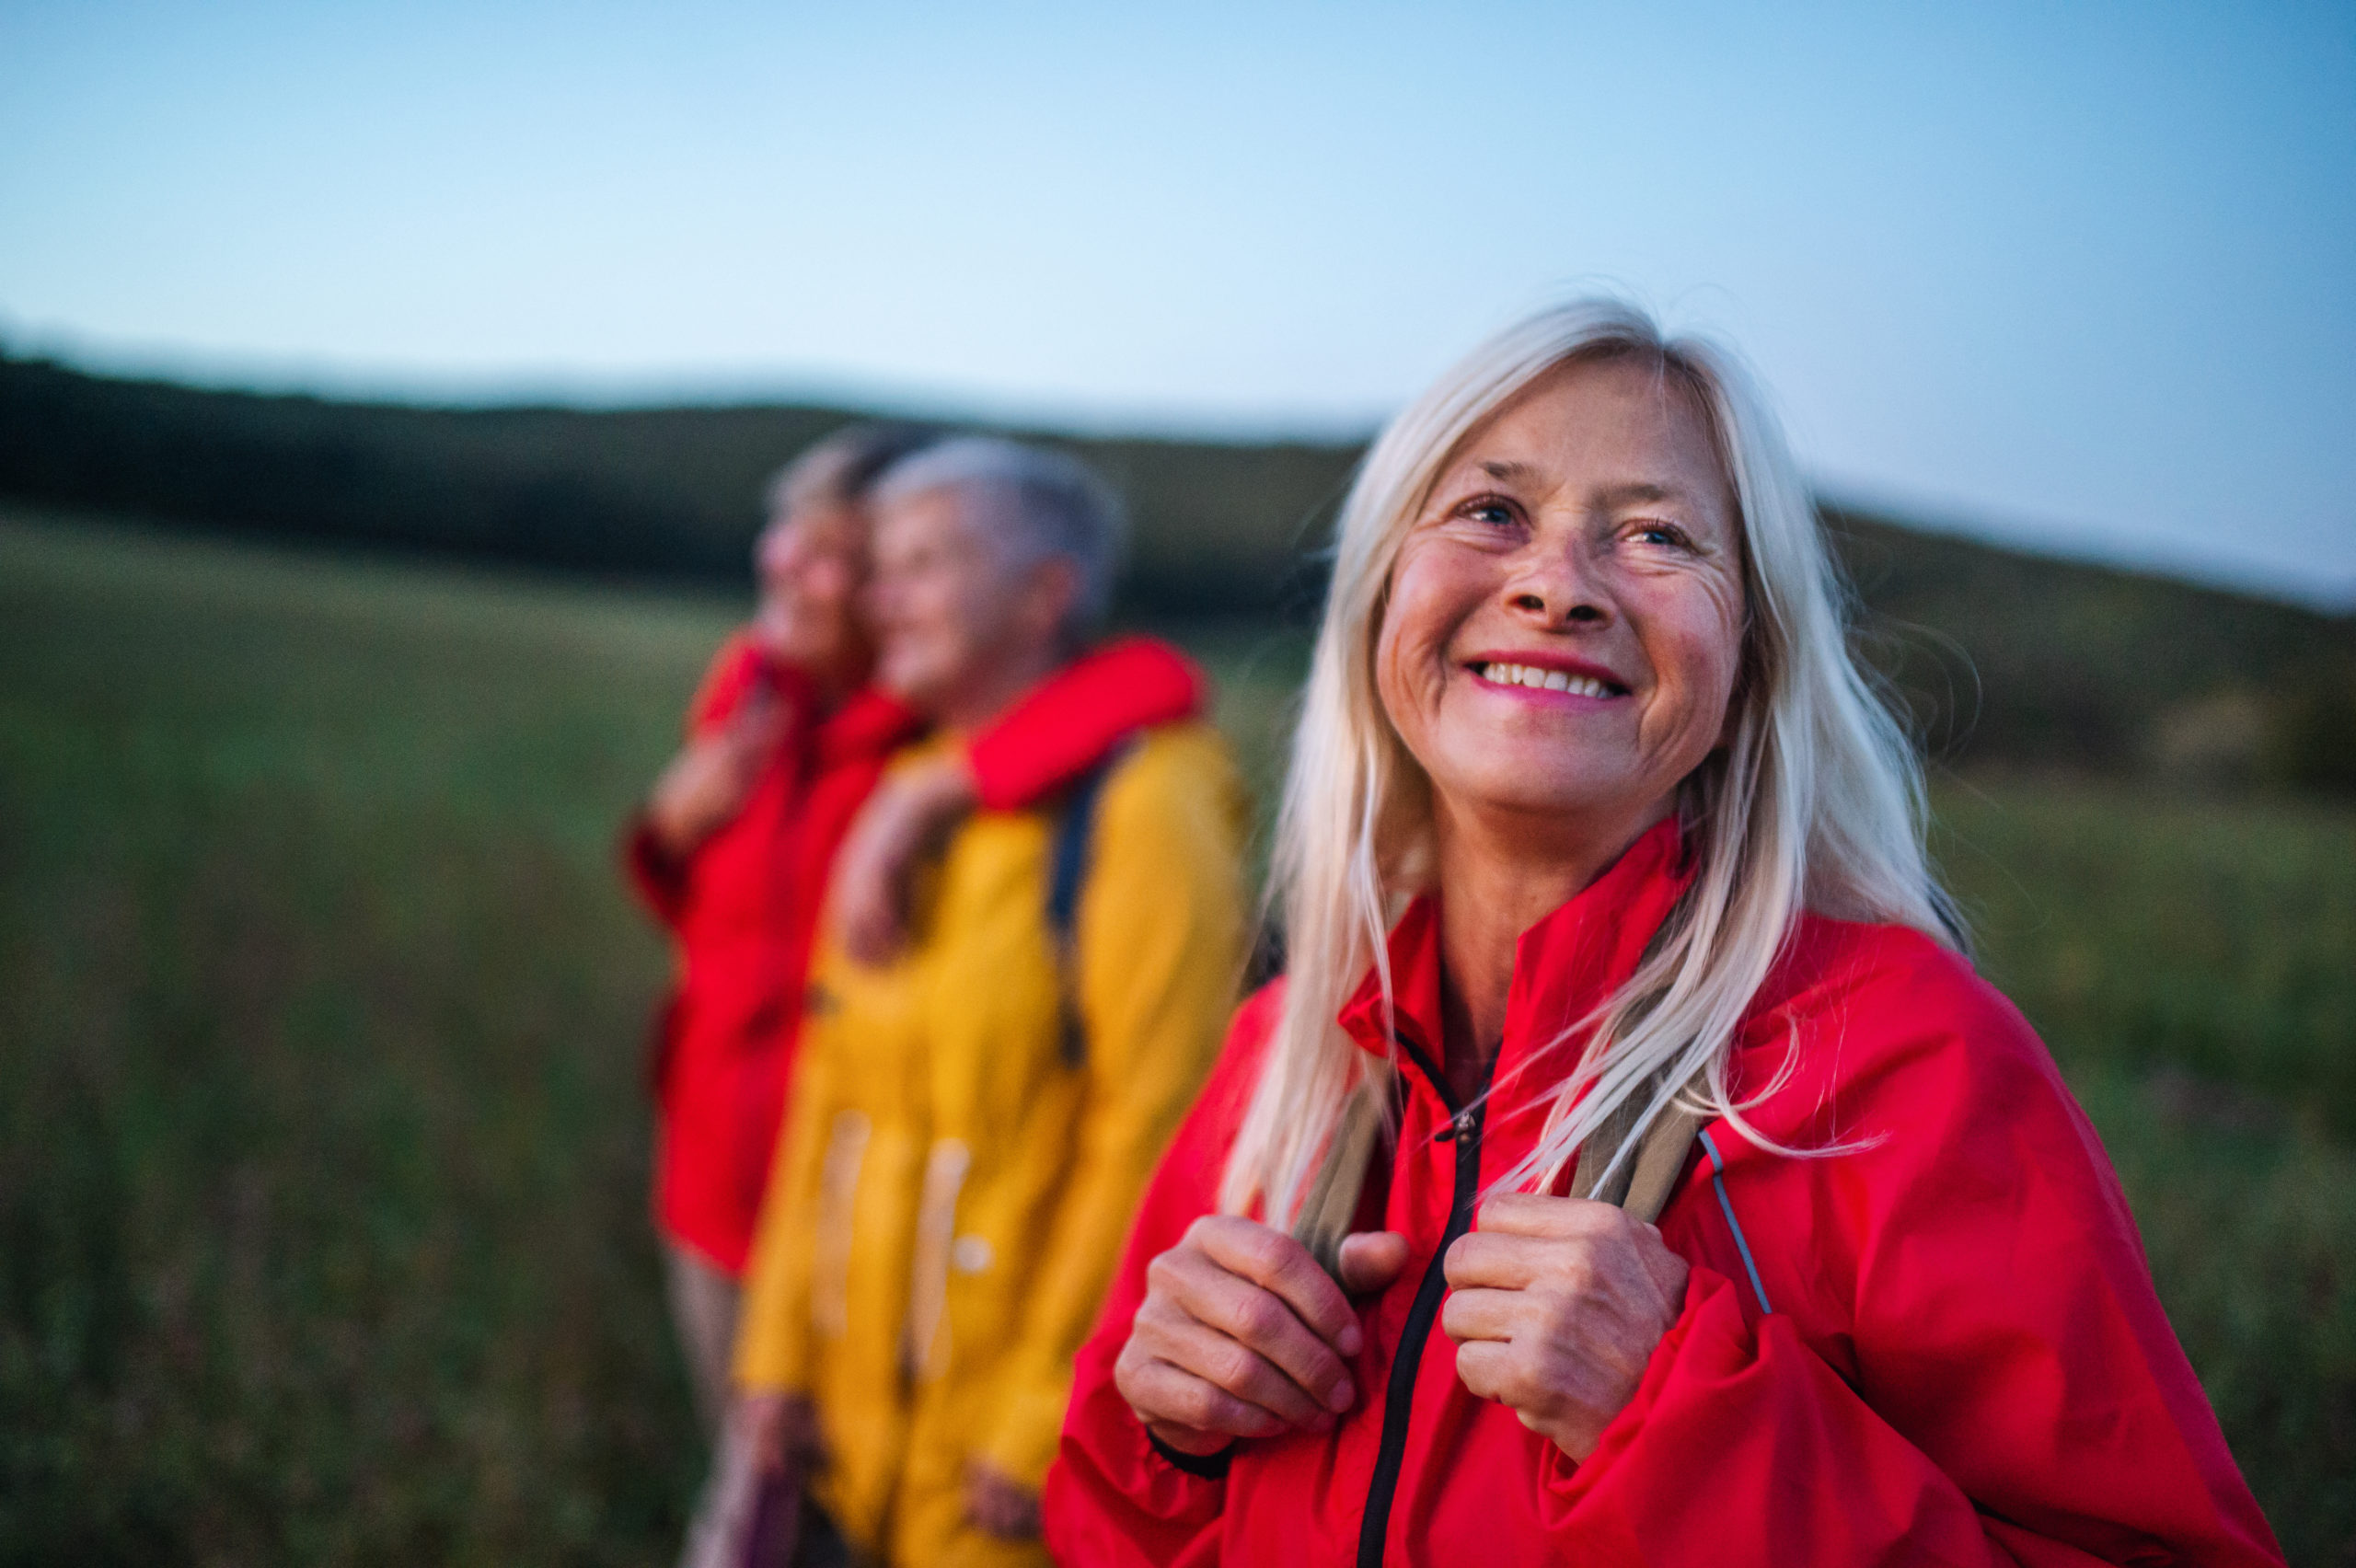 Senior Women Friends On Walk Outdoors In Nature At Dusk.